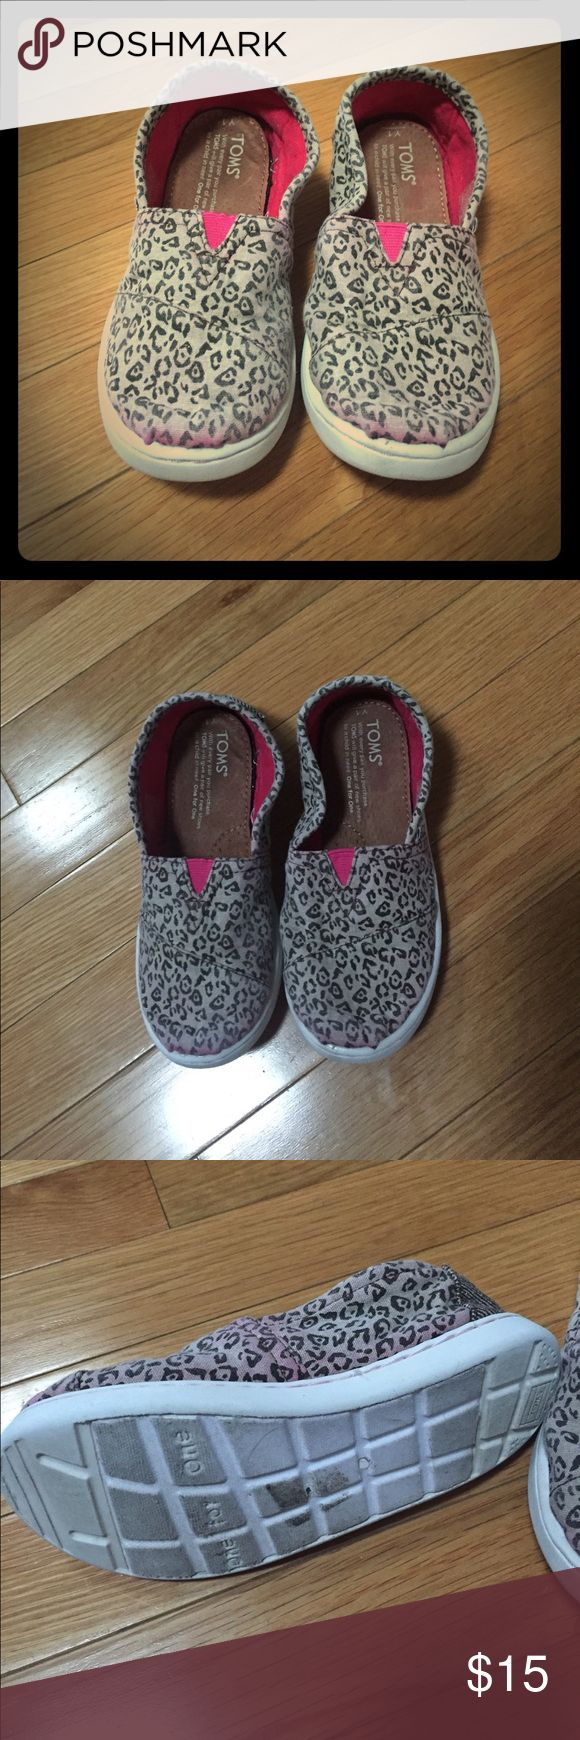 Kids Toms animal print GUC. Animal print with pink tint. Size 1Y. (K86) TOMS Shoes Sneakers